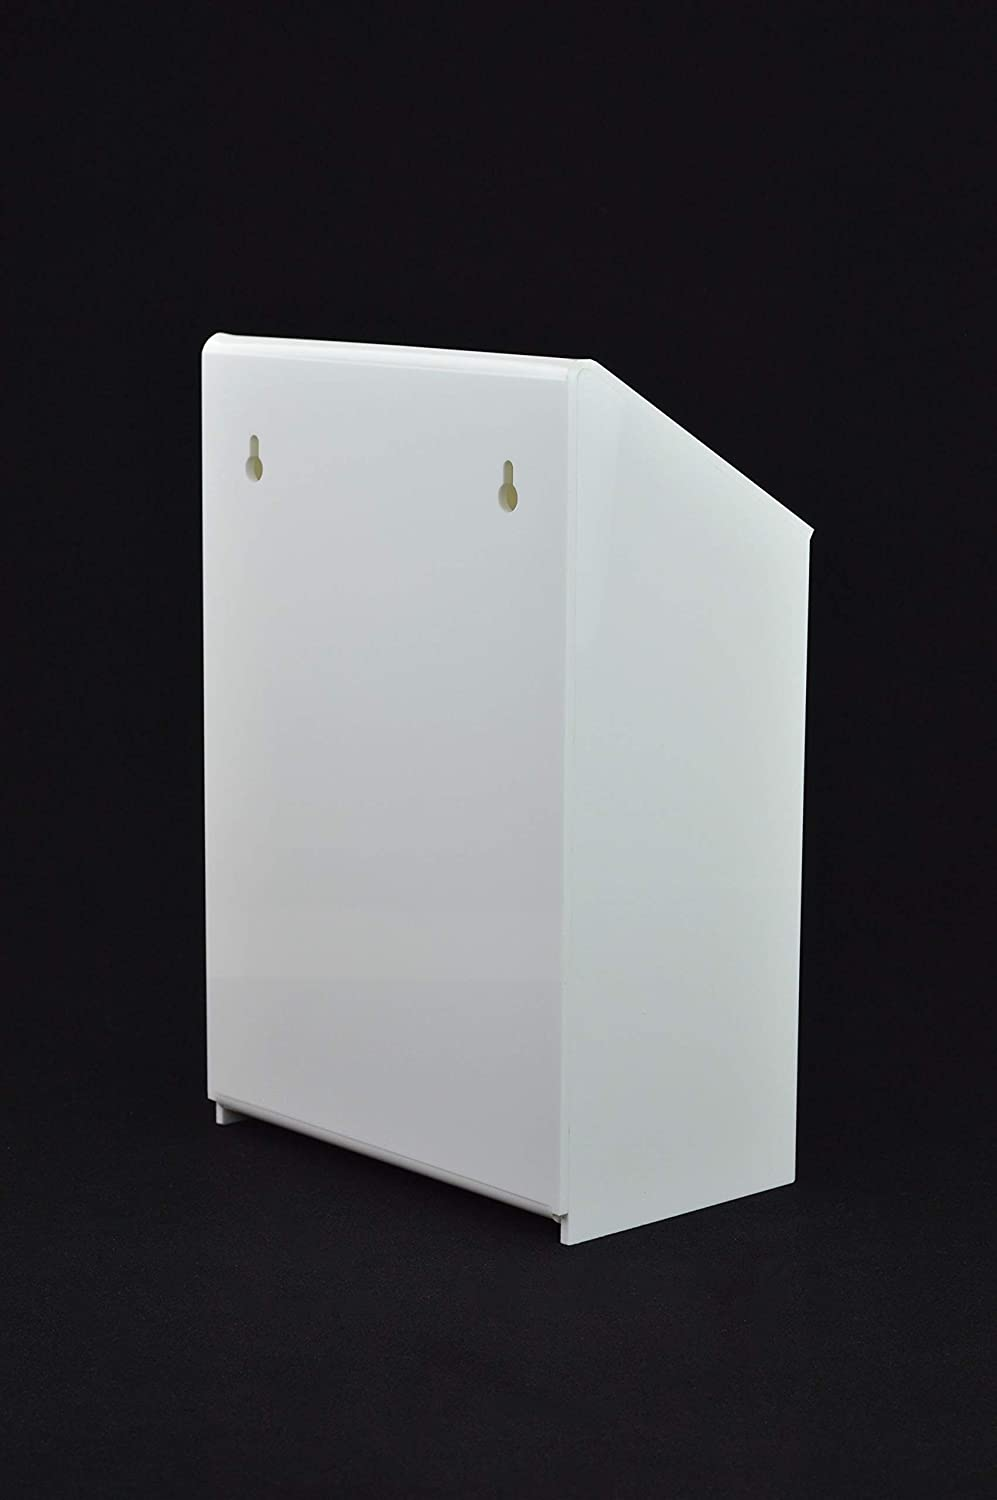 Lockable Collection Box Suggestion Box PDS9463 White White Acrylic